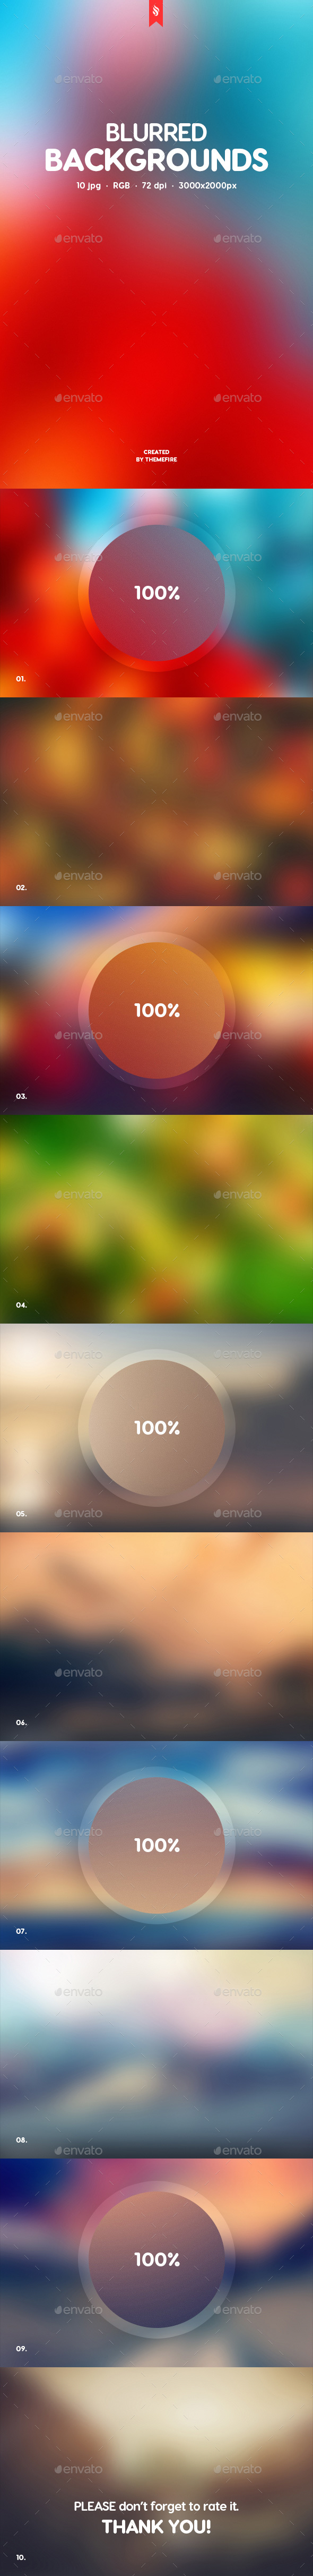 10 Blurred Backgrounds - Backgrounds Graphics